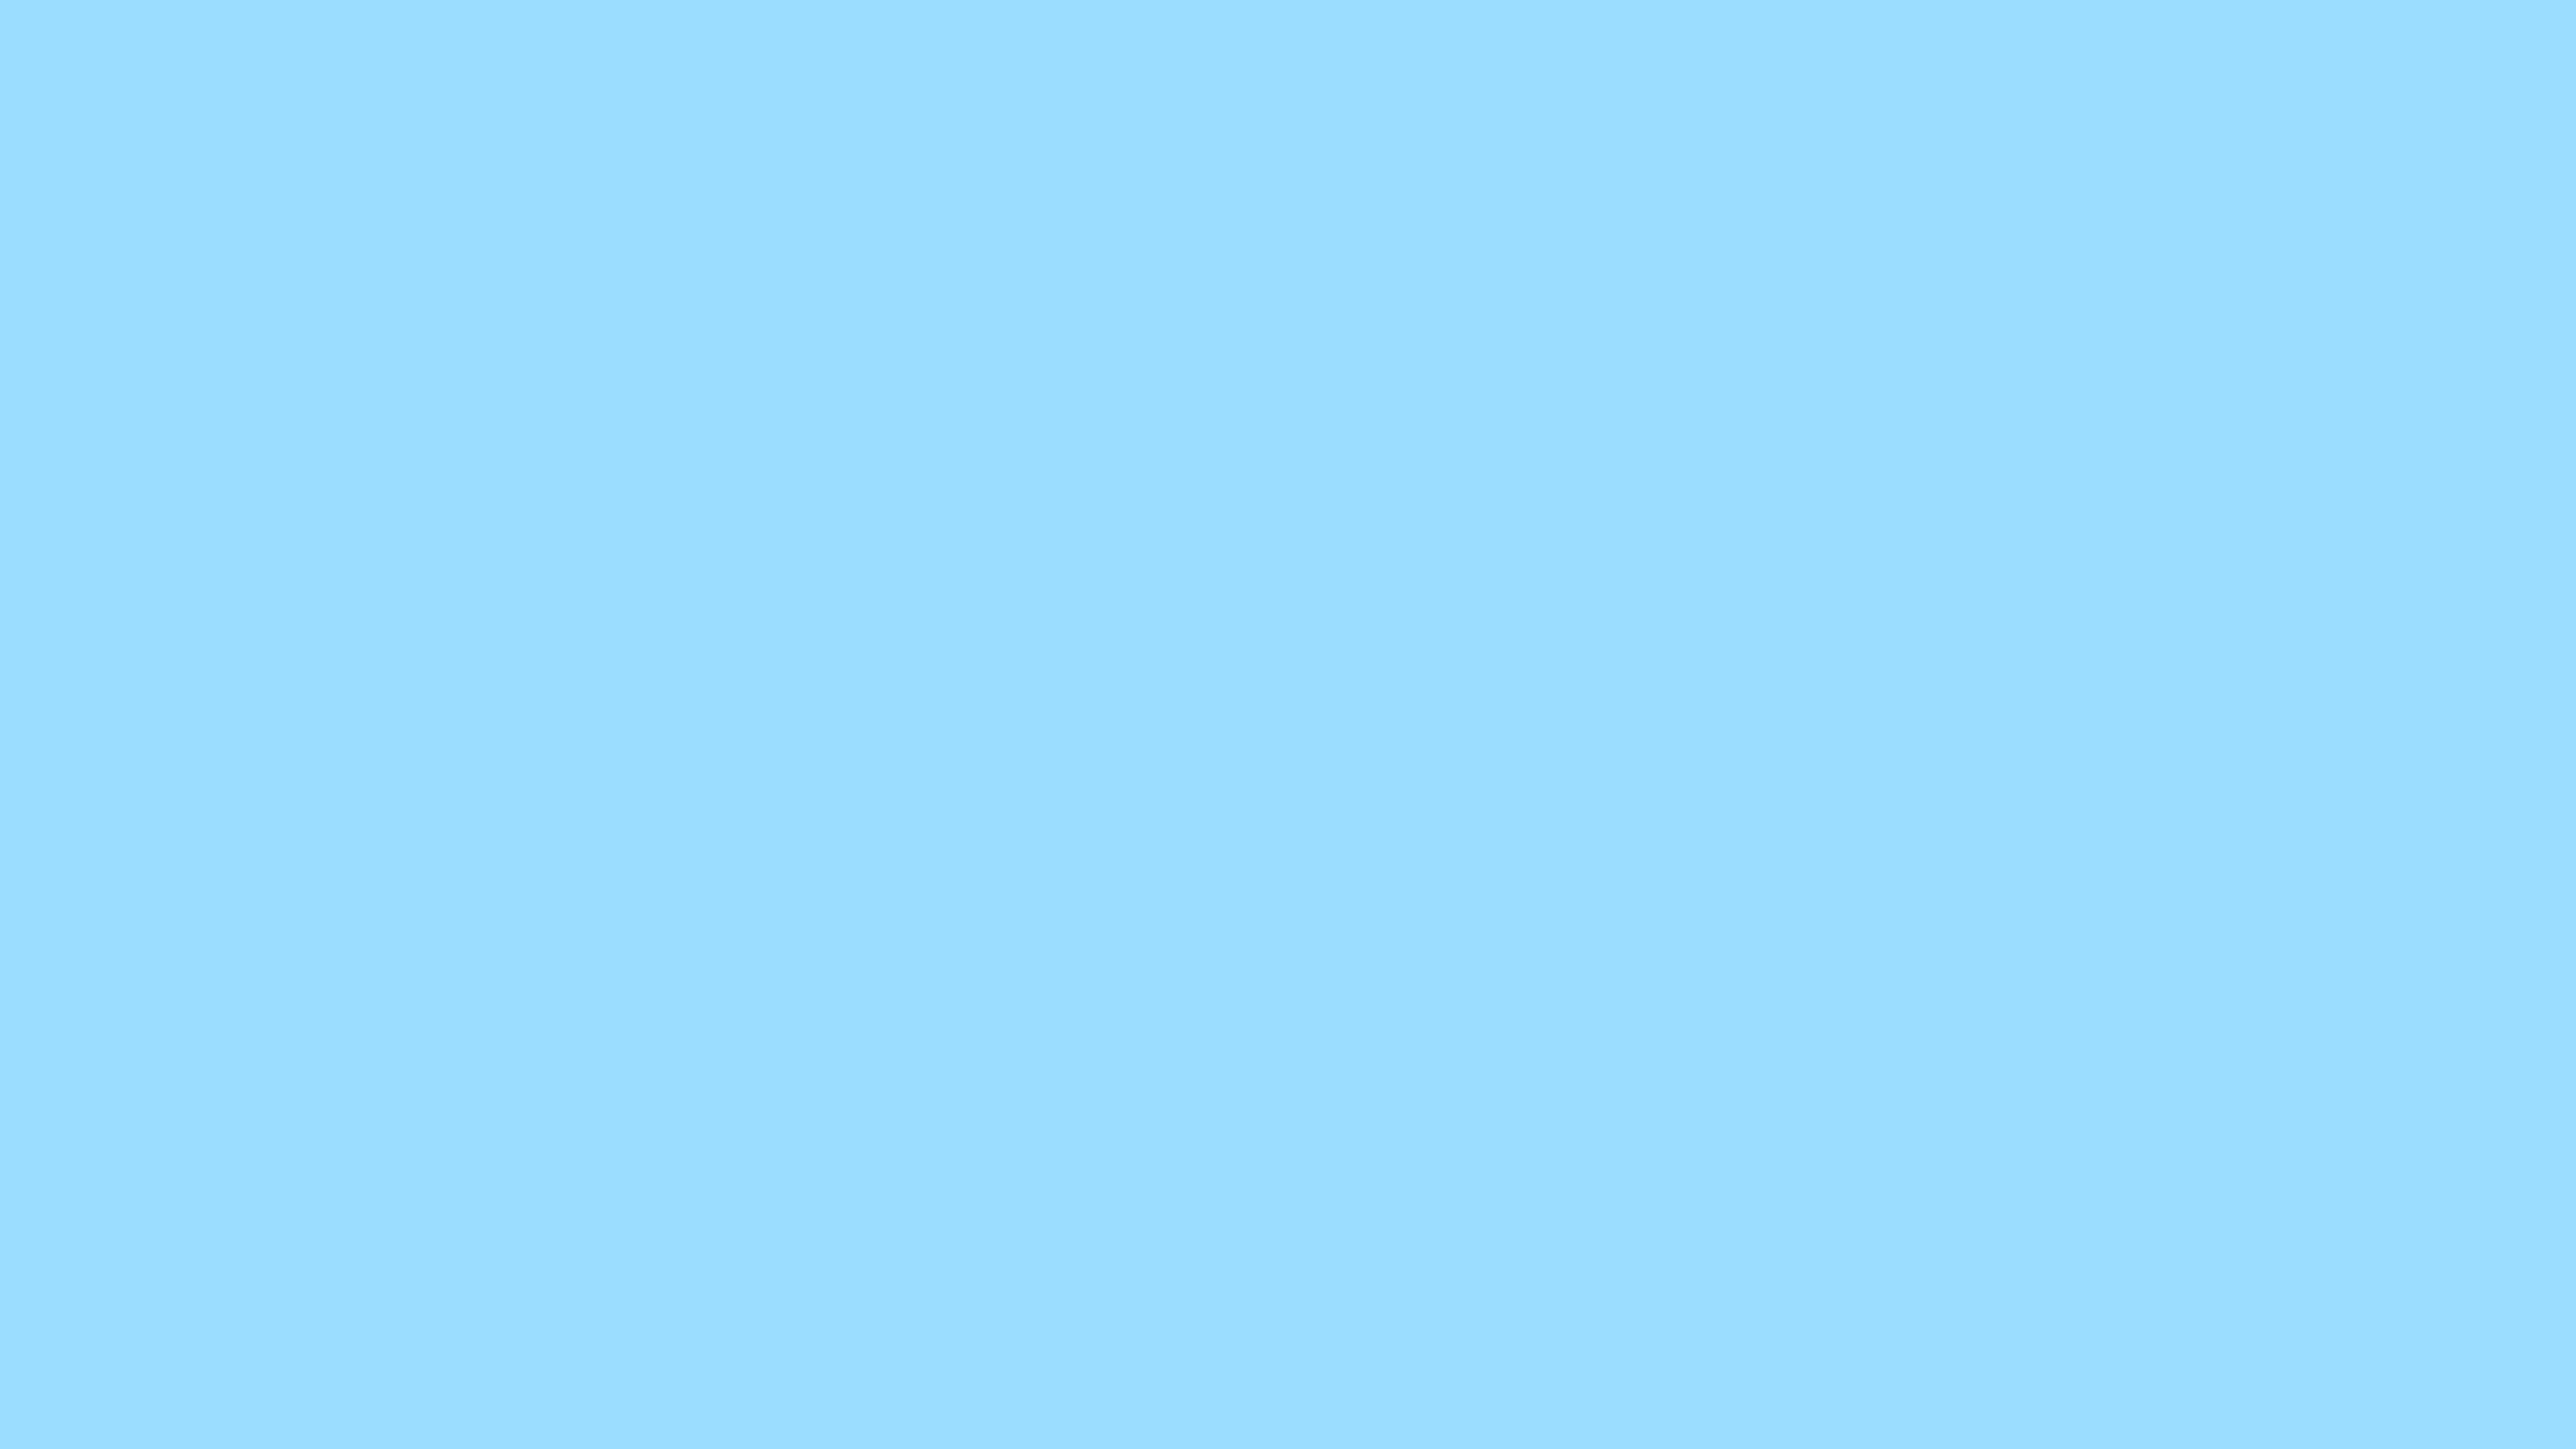 4096x2304 Columbia Blue Solid Color Background